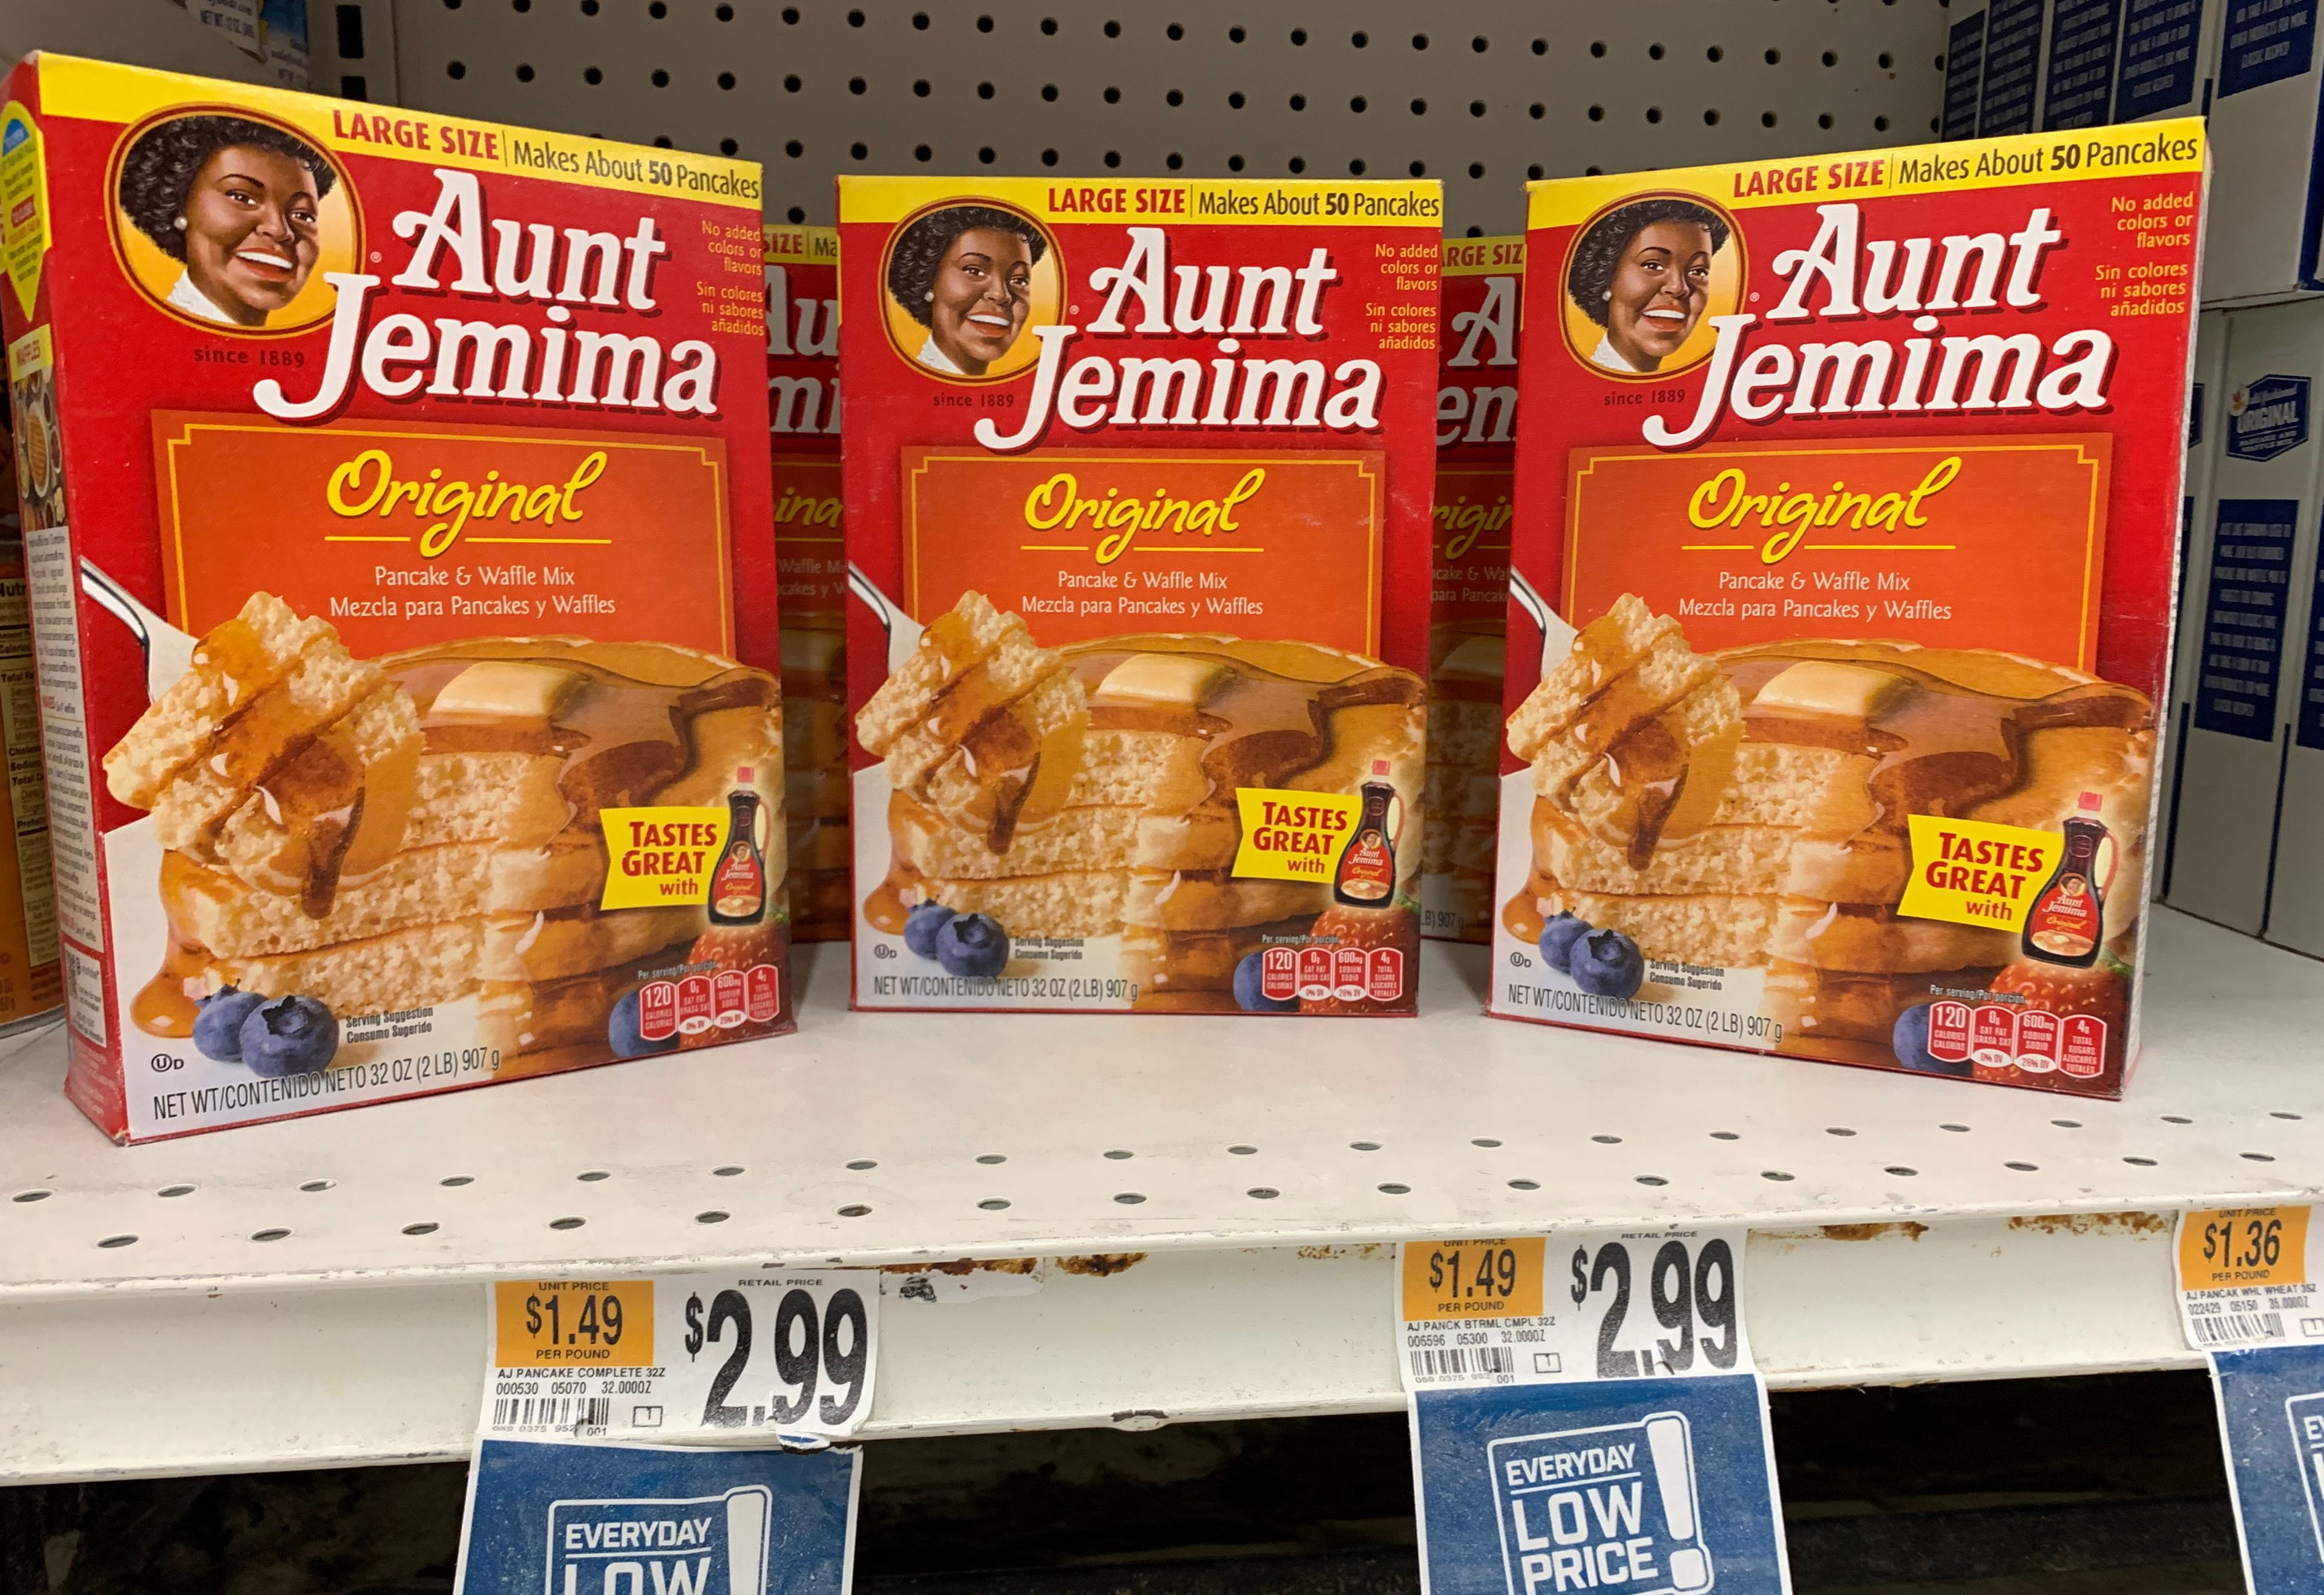 Boxes of Aunt Jemima pancake mix are seen on a store shelf on June 17, 2020 in Washington,DC. - The Aunt Jemima brand of syrup and pancake mix will get a new name and image, Quaker Oats announced on June 17, 2020, saying that the company recognizes that